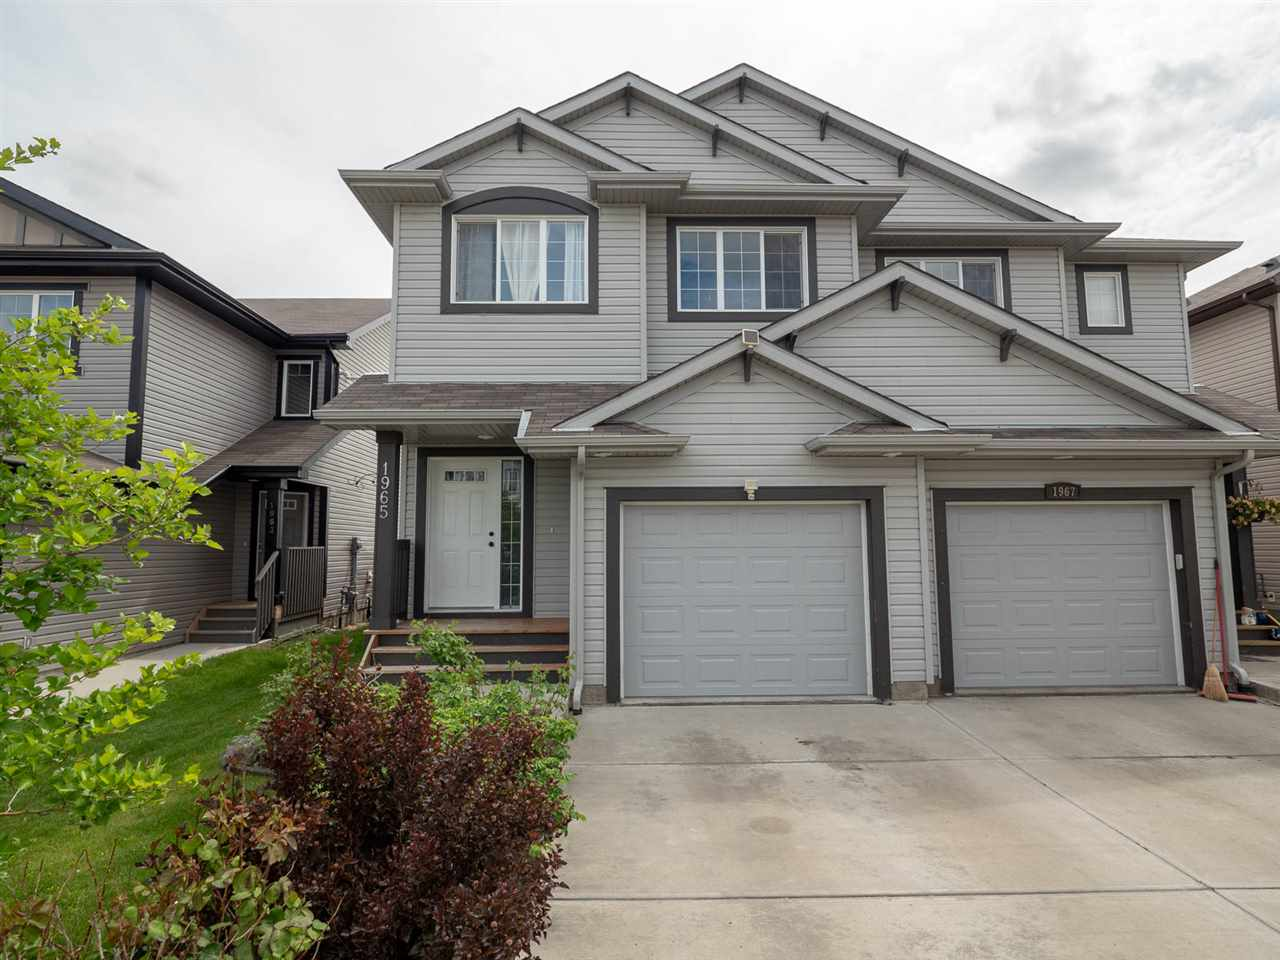 MLS® listing #E4162515 for sale located at 1965 118 Street